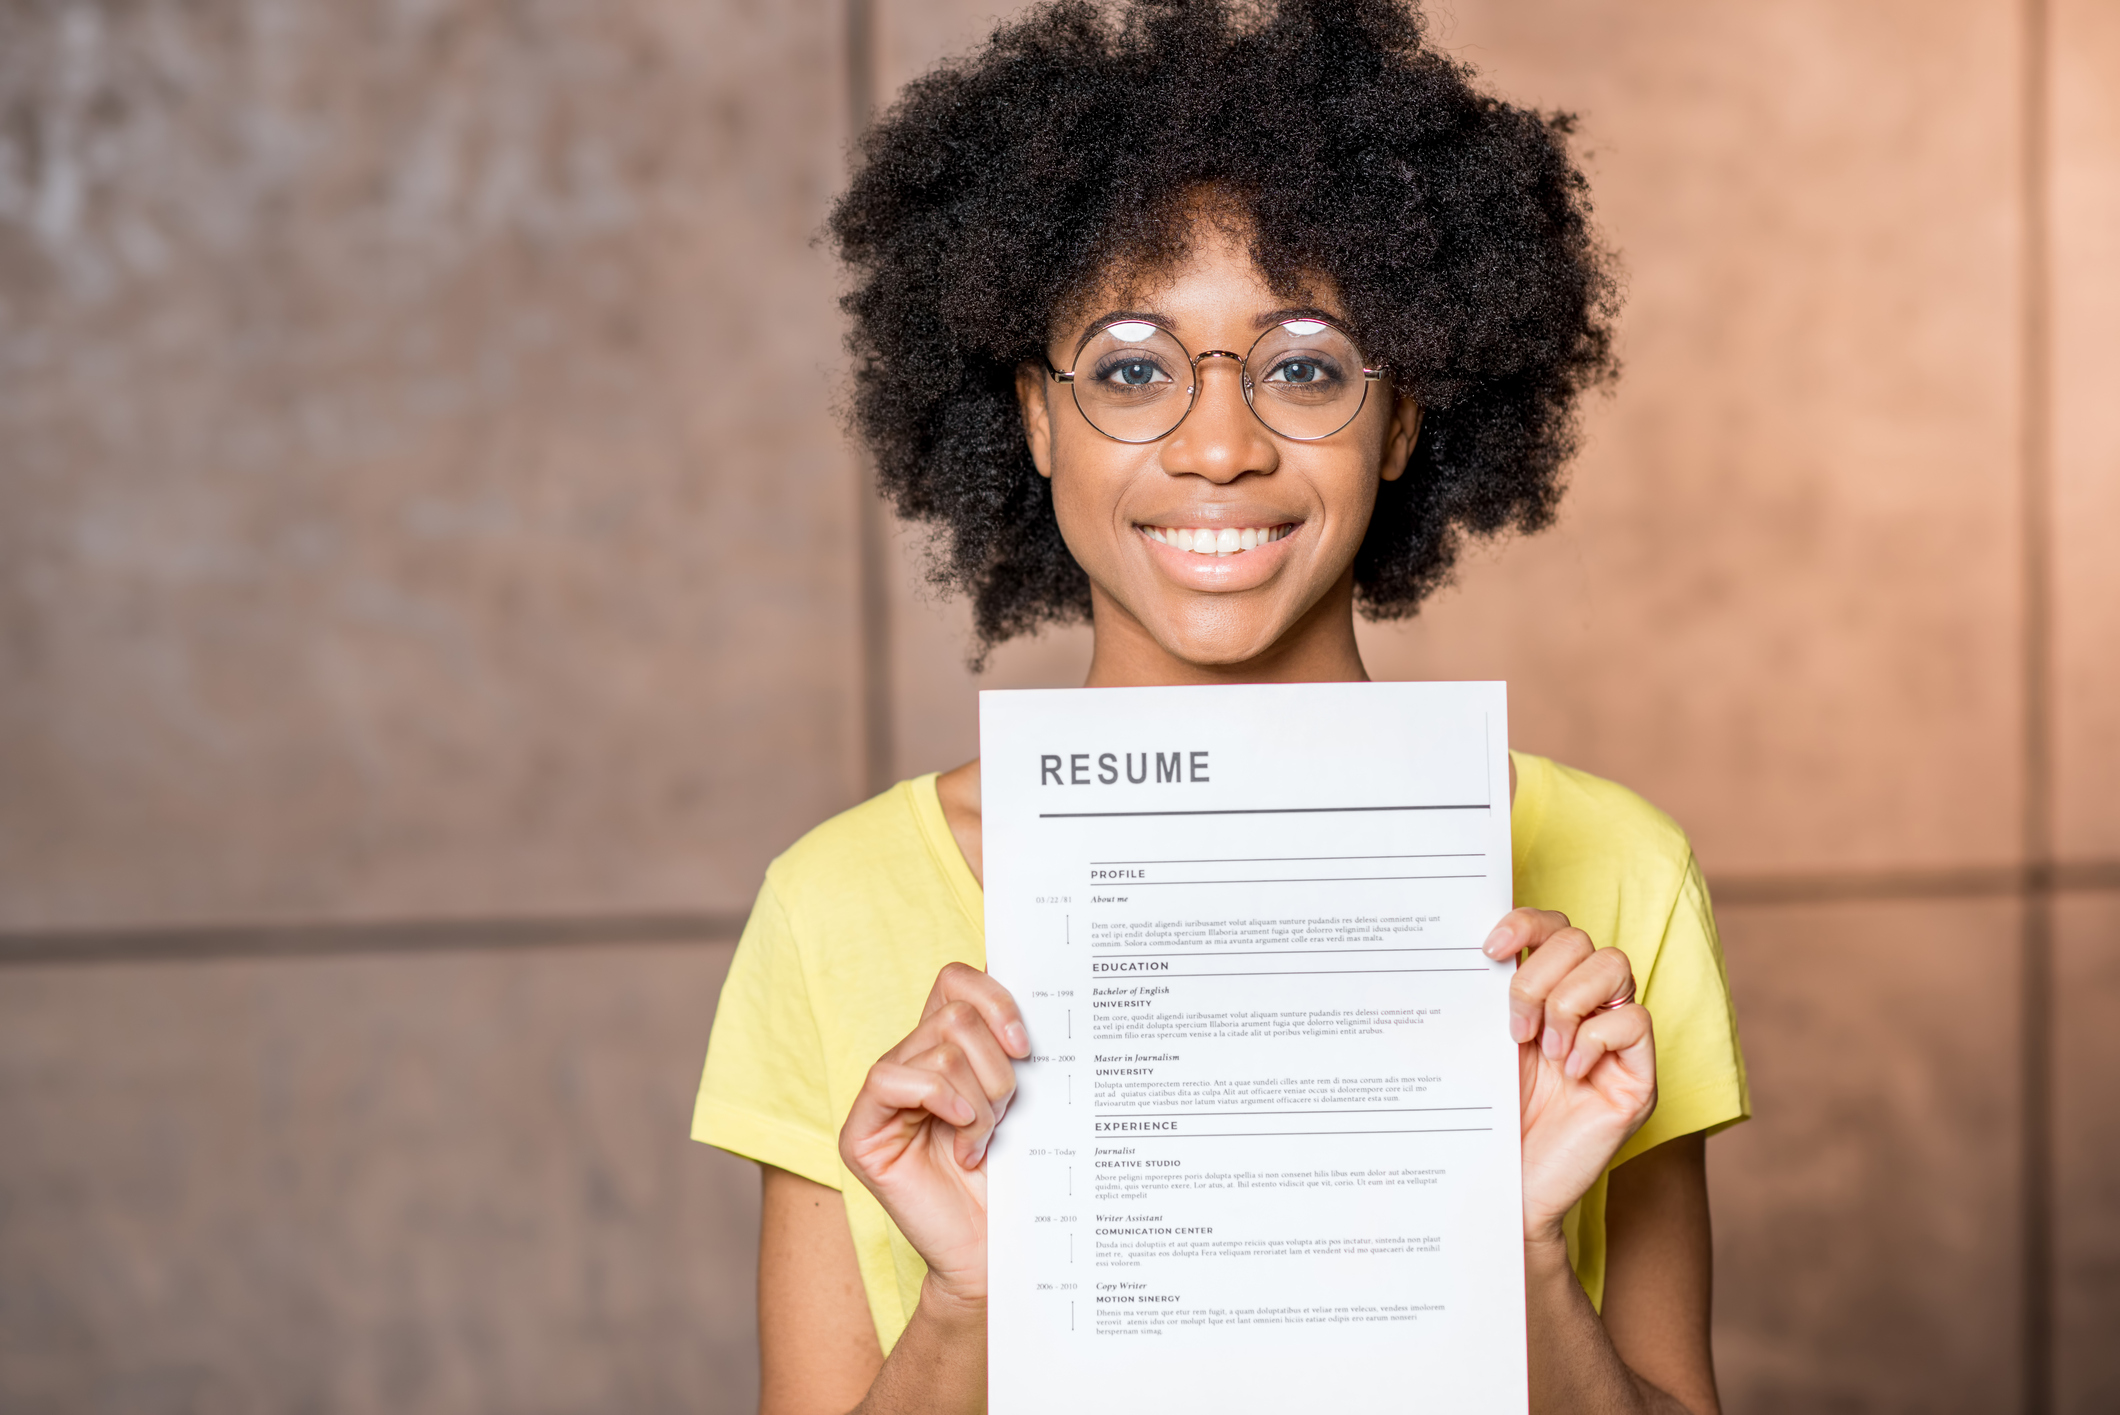 Discover what makes a great resume.